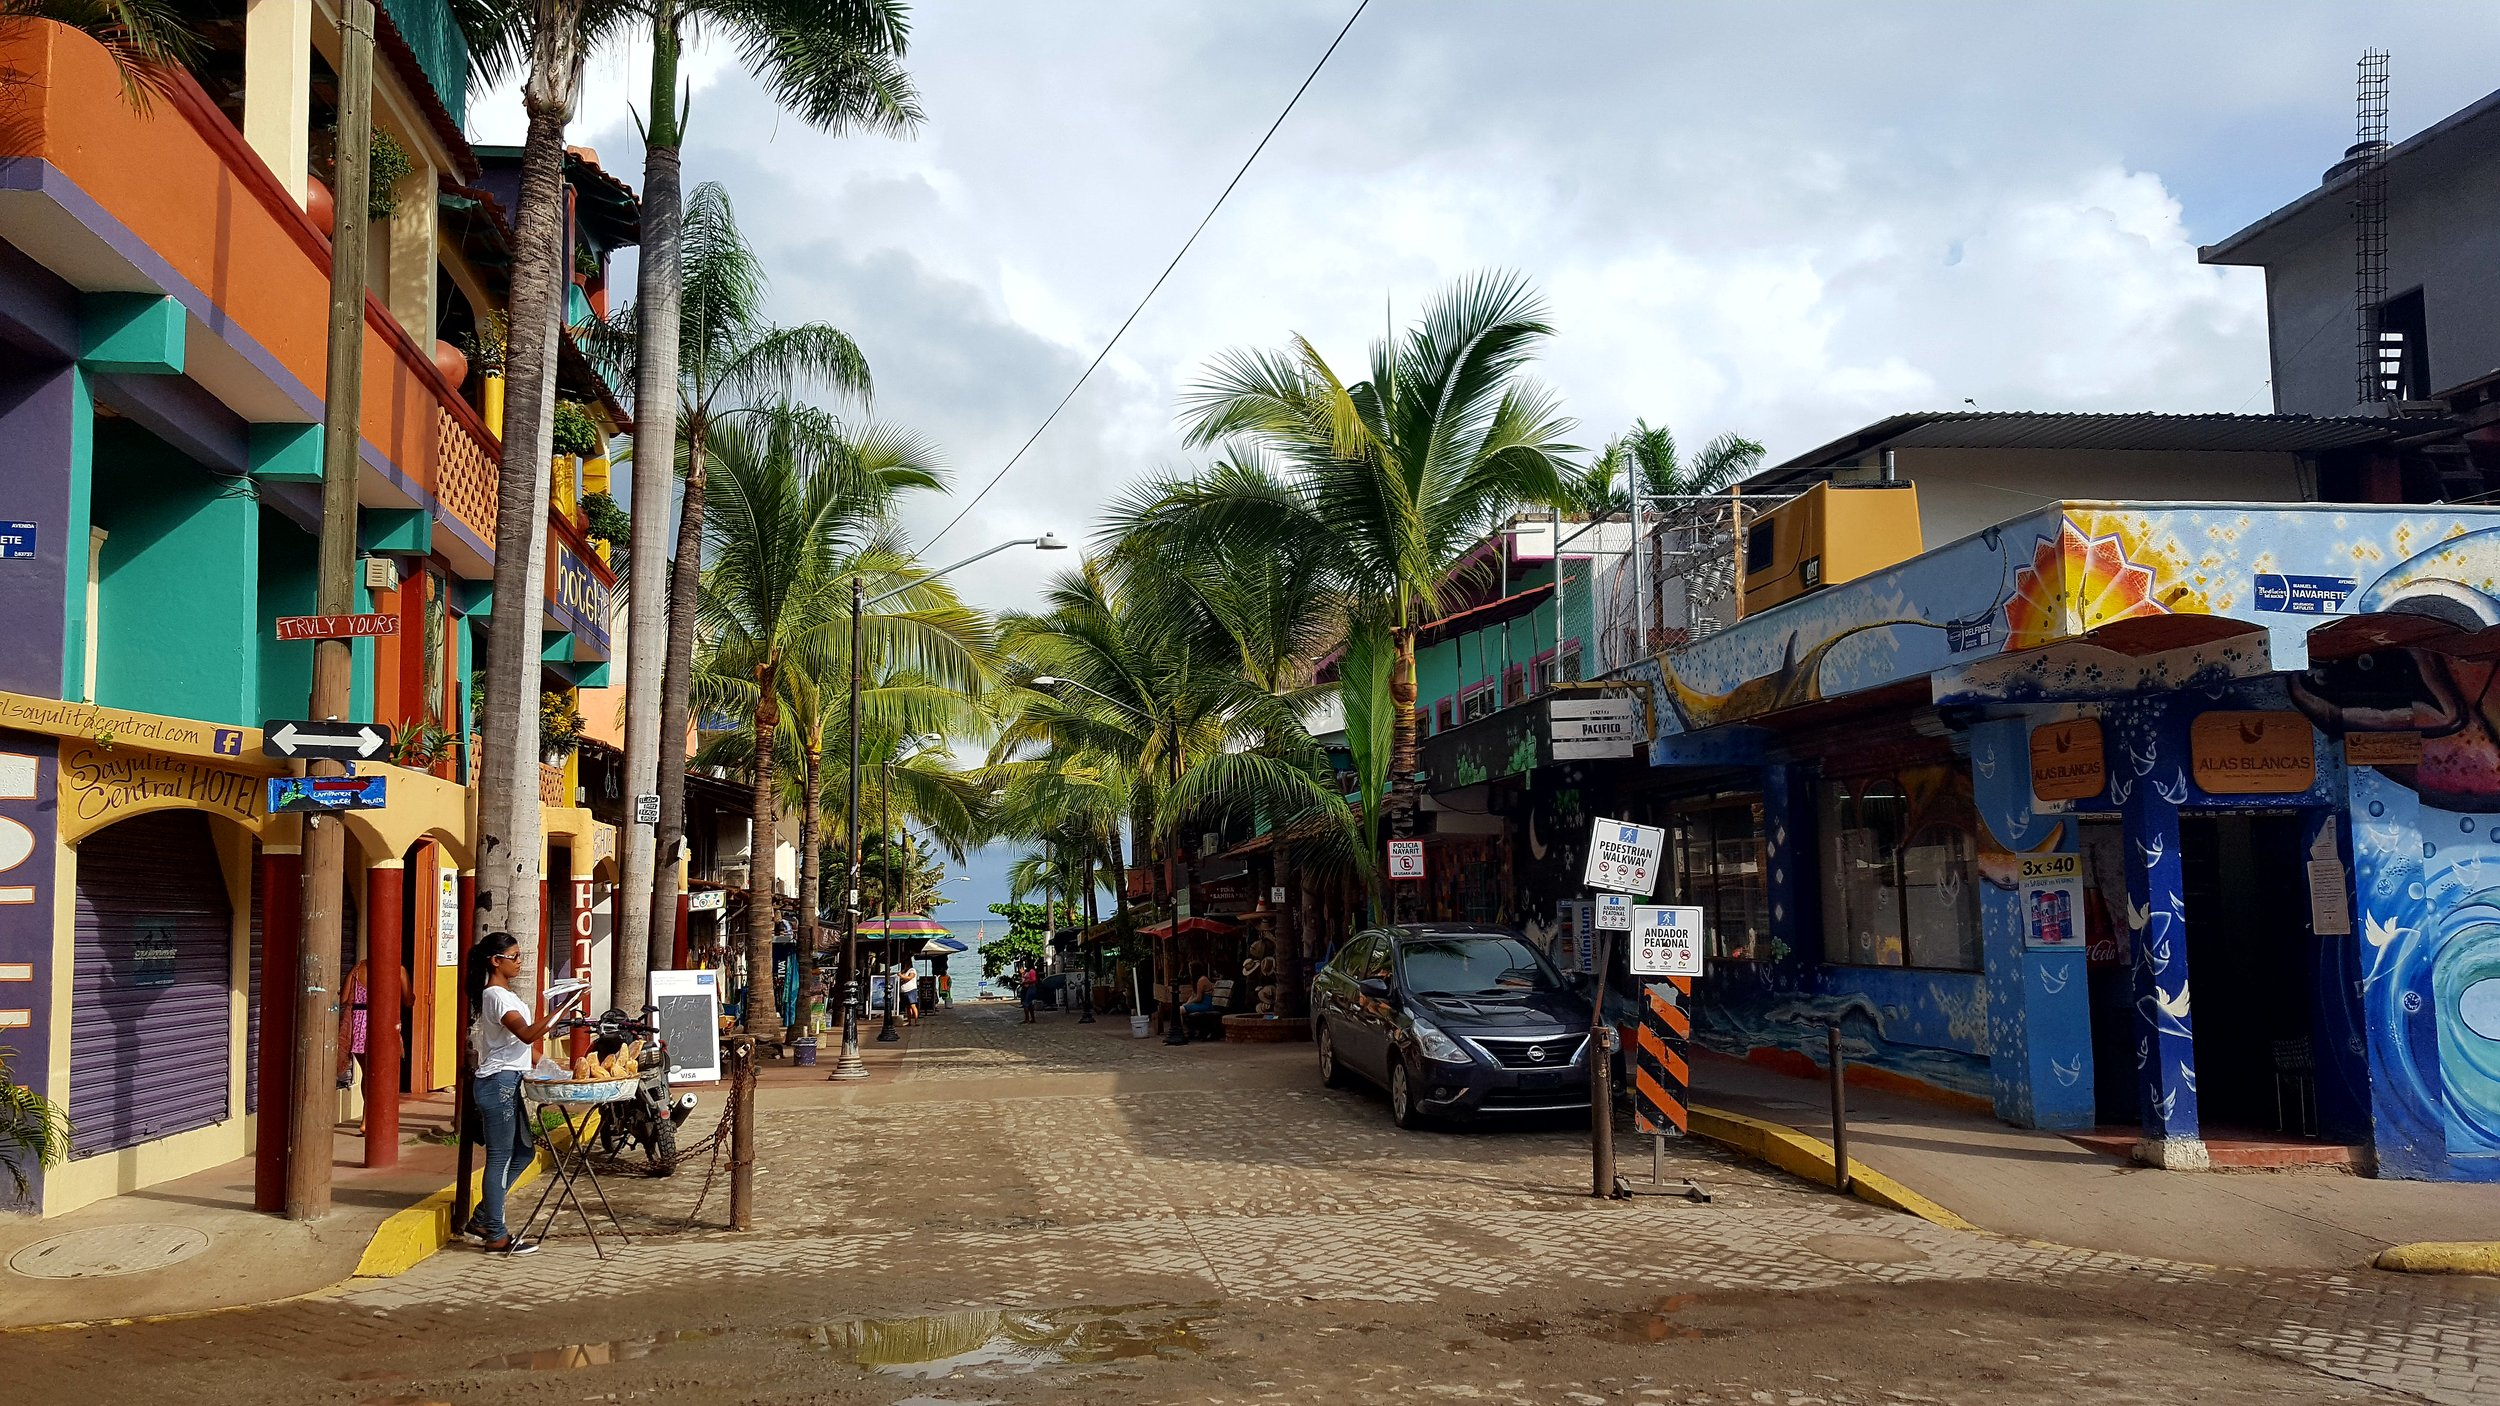 Mornings in Sayulita are quieter than usual during the low season